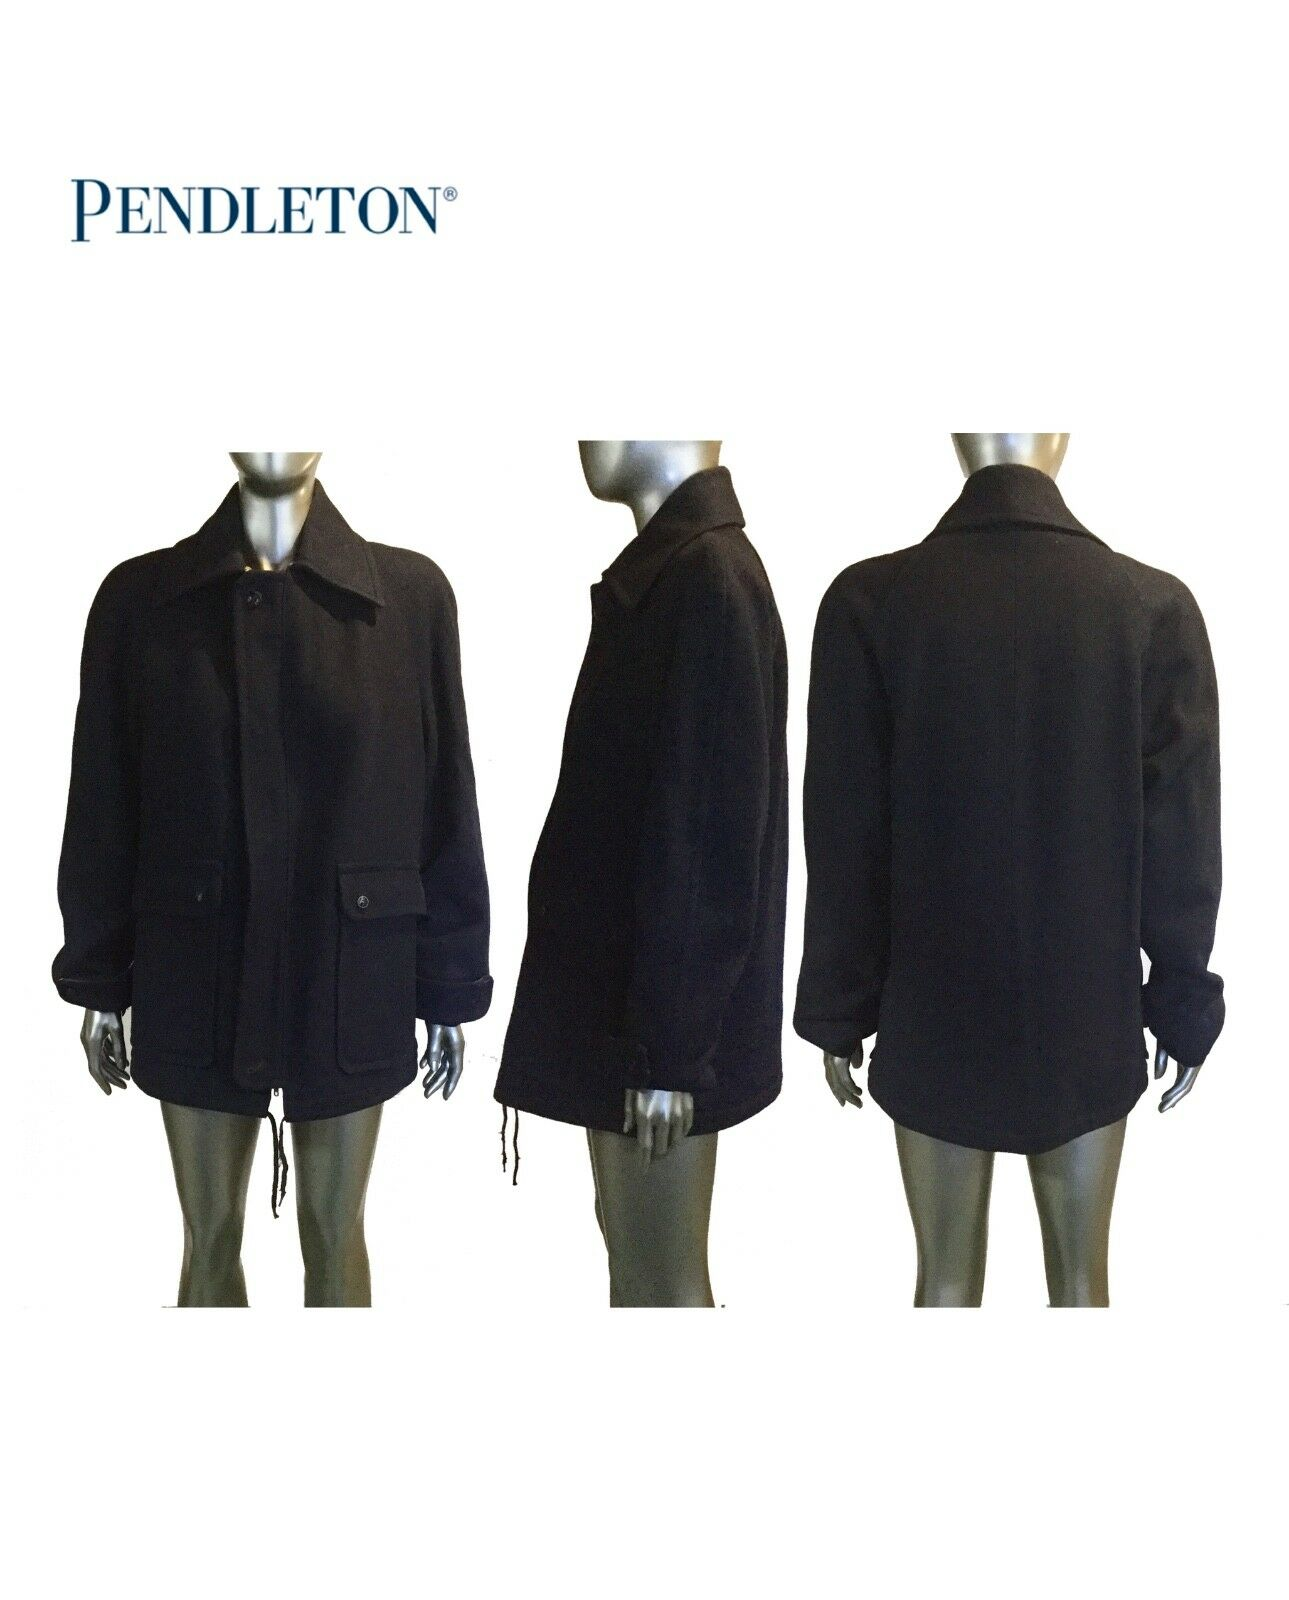 Vintage Pendleton Coat, Col Navy, With Plaid lining, Size 20 inches  28.5 inches